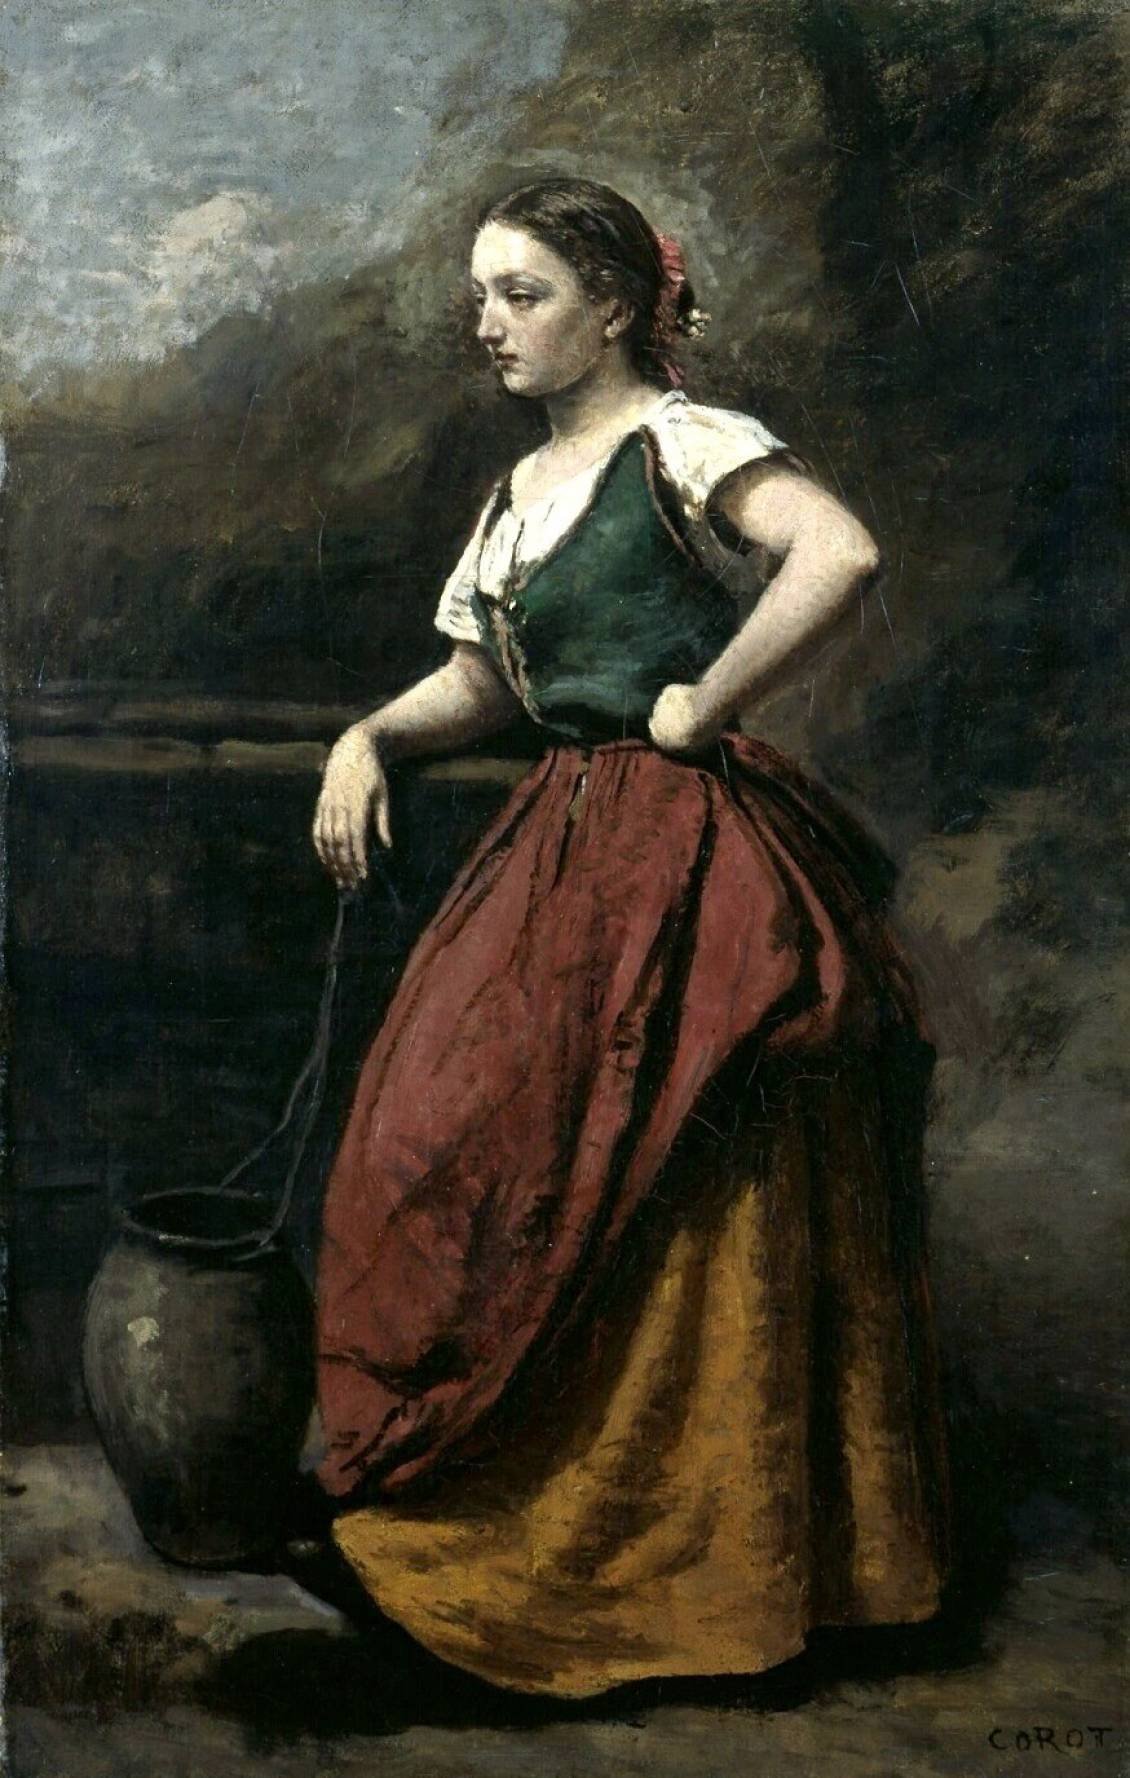 Jean-Baptiste Corot,Young woman at a well, 1865-1870 (Former collection Rijksmuseum Kröller-Müller)